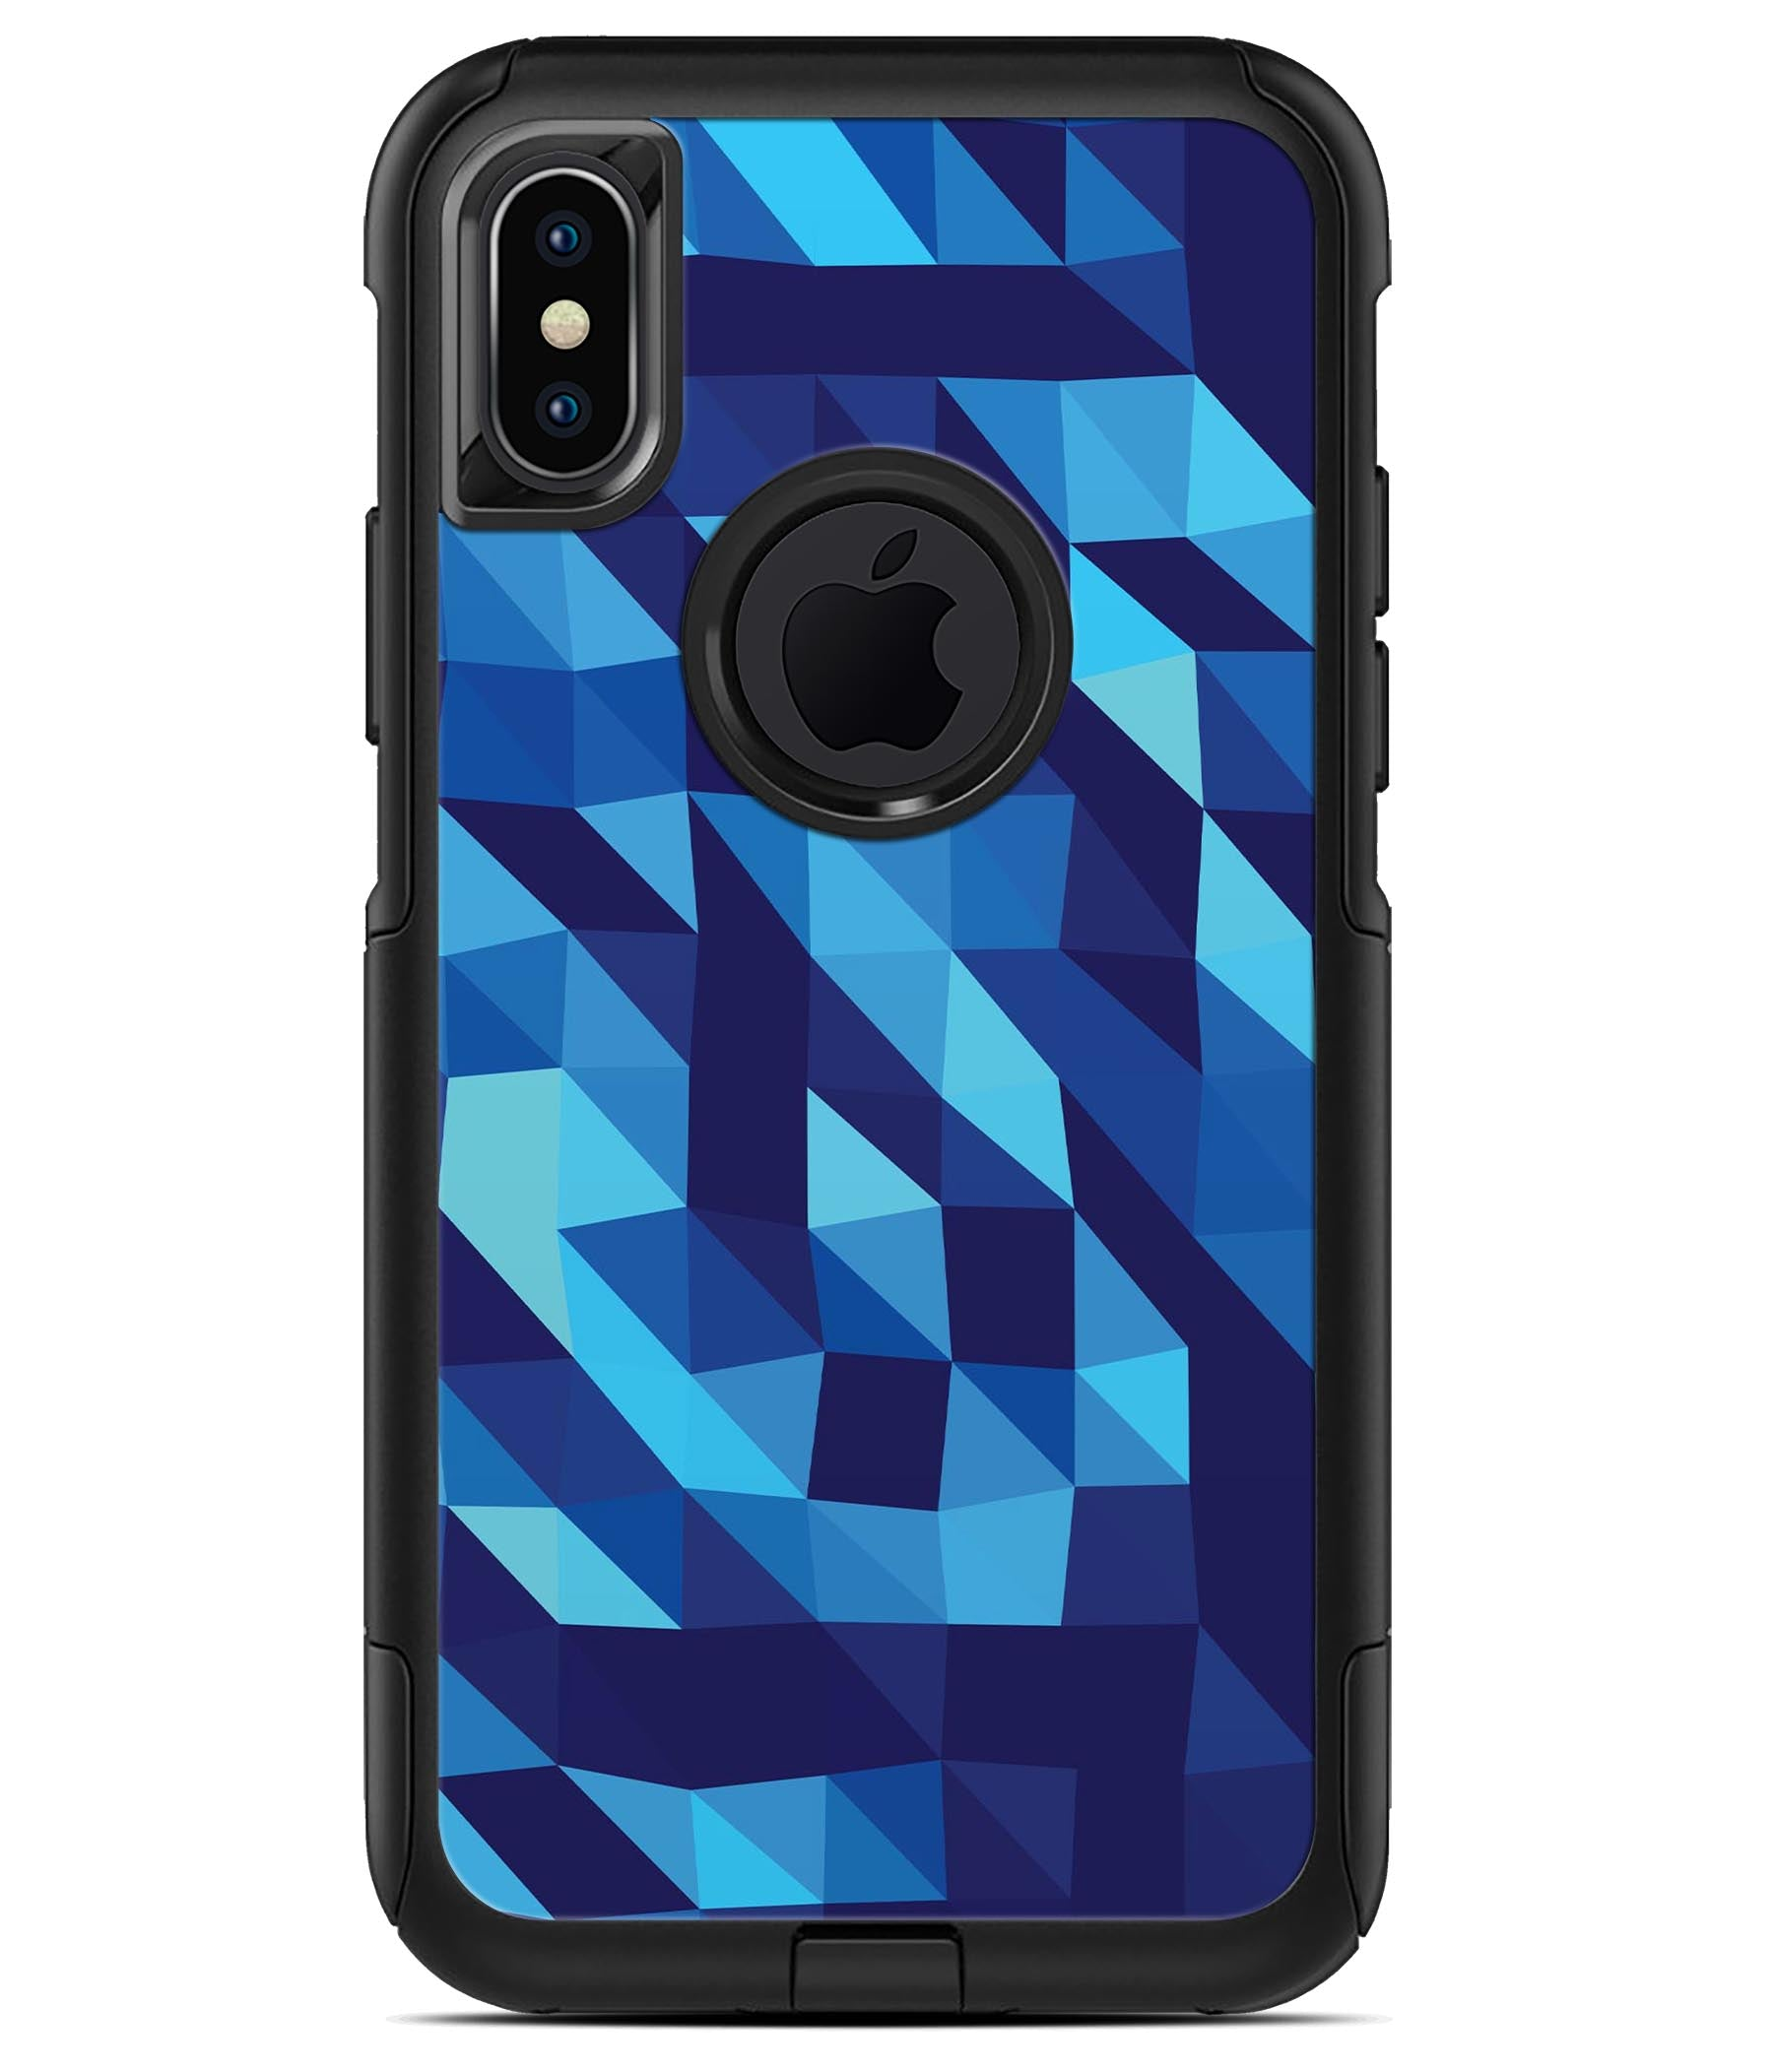 50 Shades of Blue Geometric Triangles - iPhone X OtterBox Case   Skin Kits 2ecb27022f02